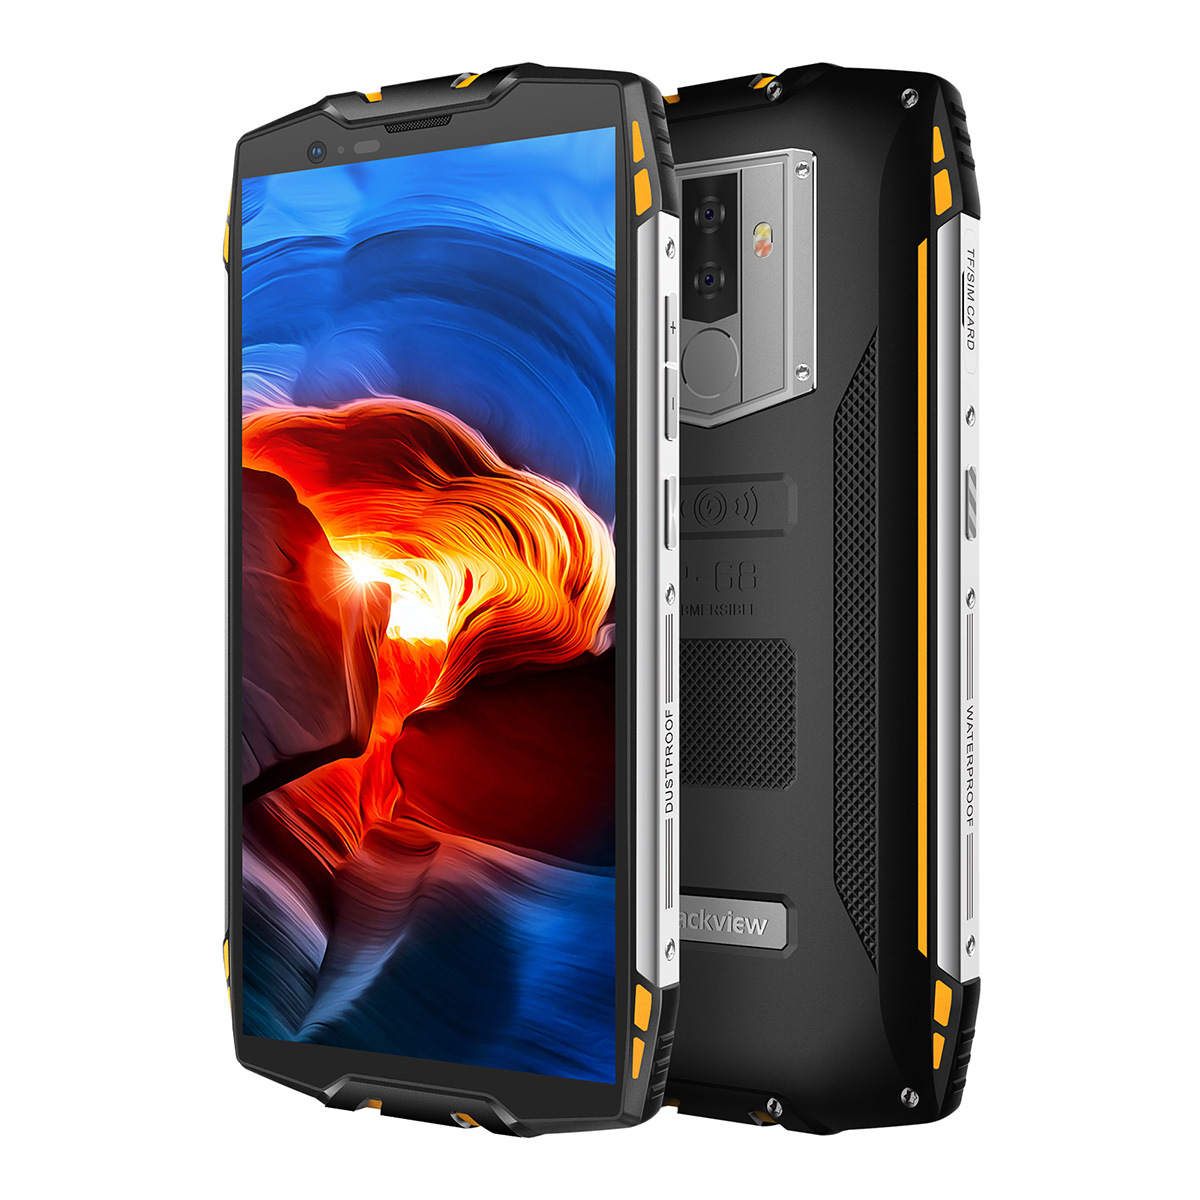 Blackview BV6800 Pro 5.7 Smartphone IP68 Waterproof Octa Core 4GB+64GB 6580mAh large Battery Wireless Charge NFC Cell phone""